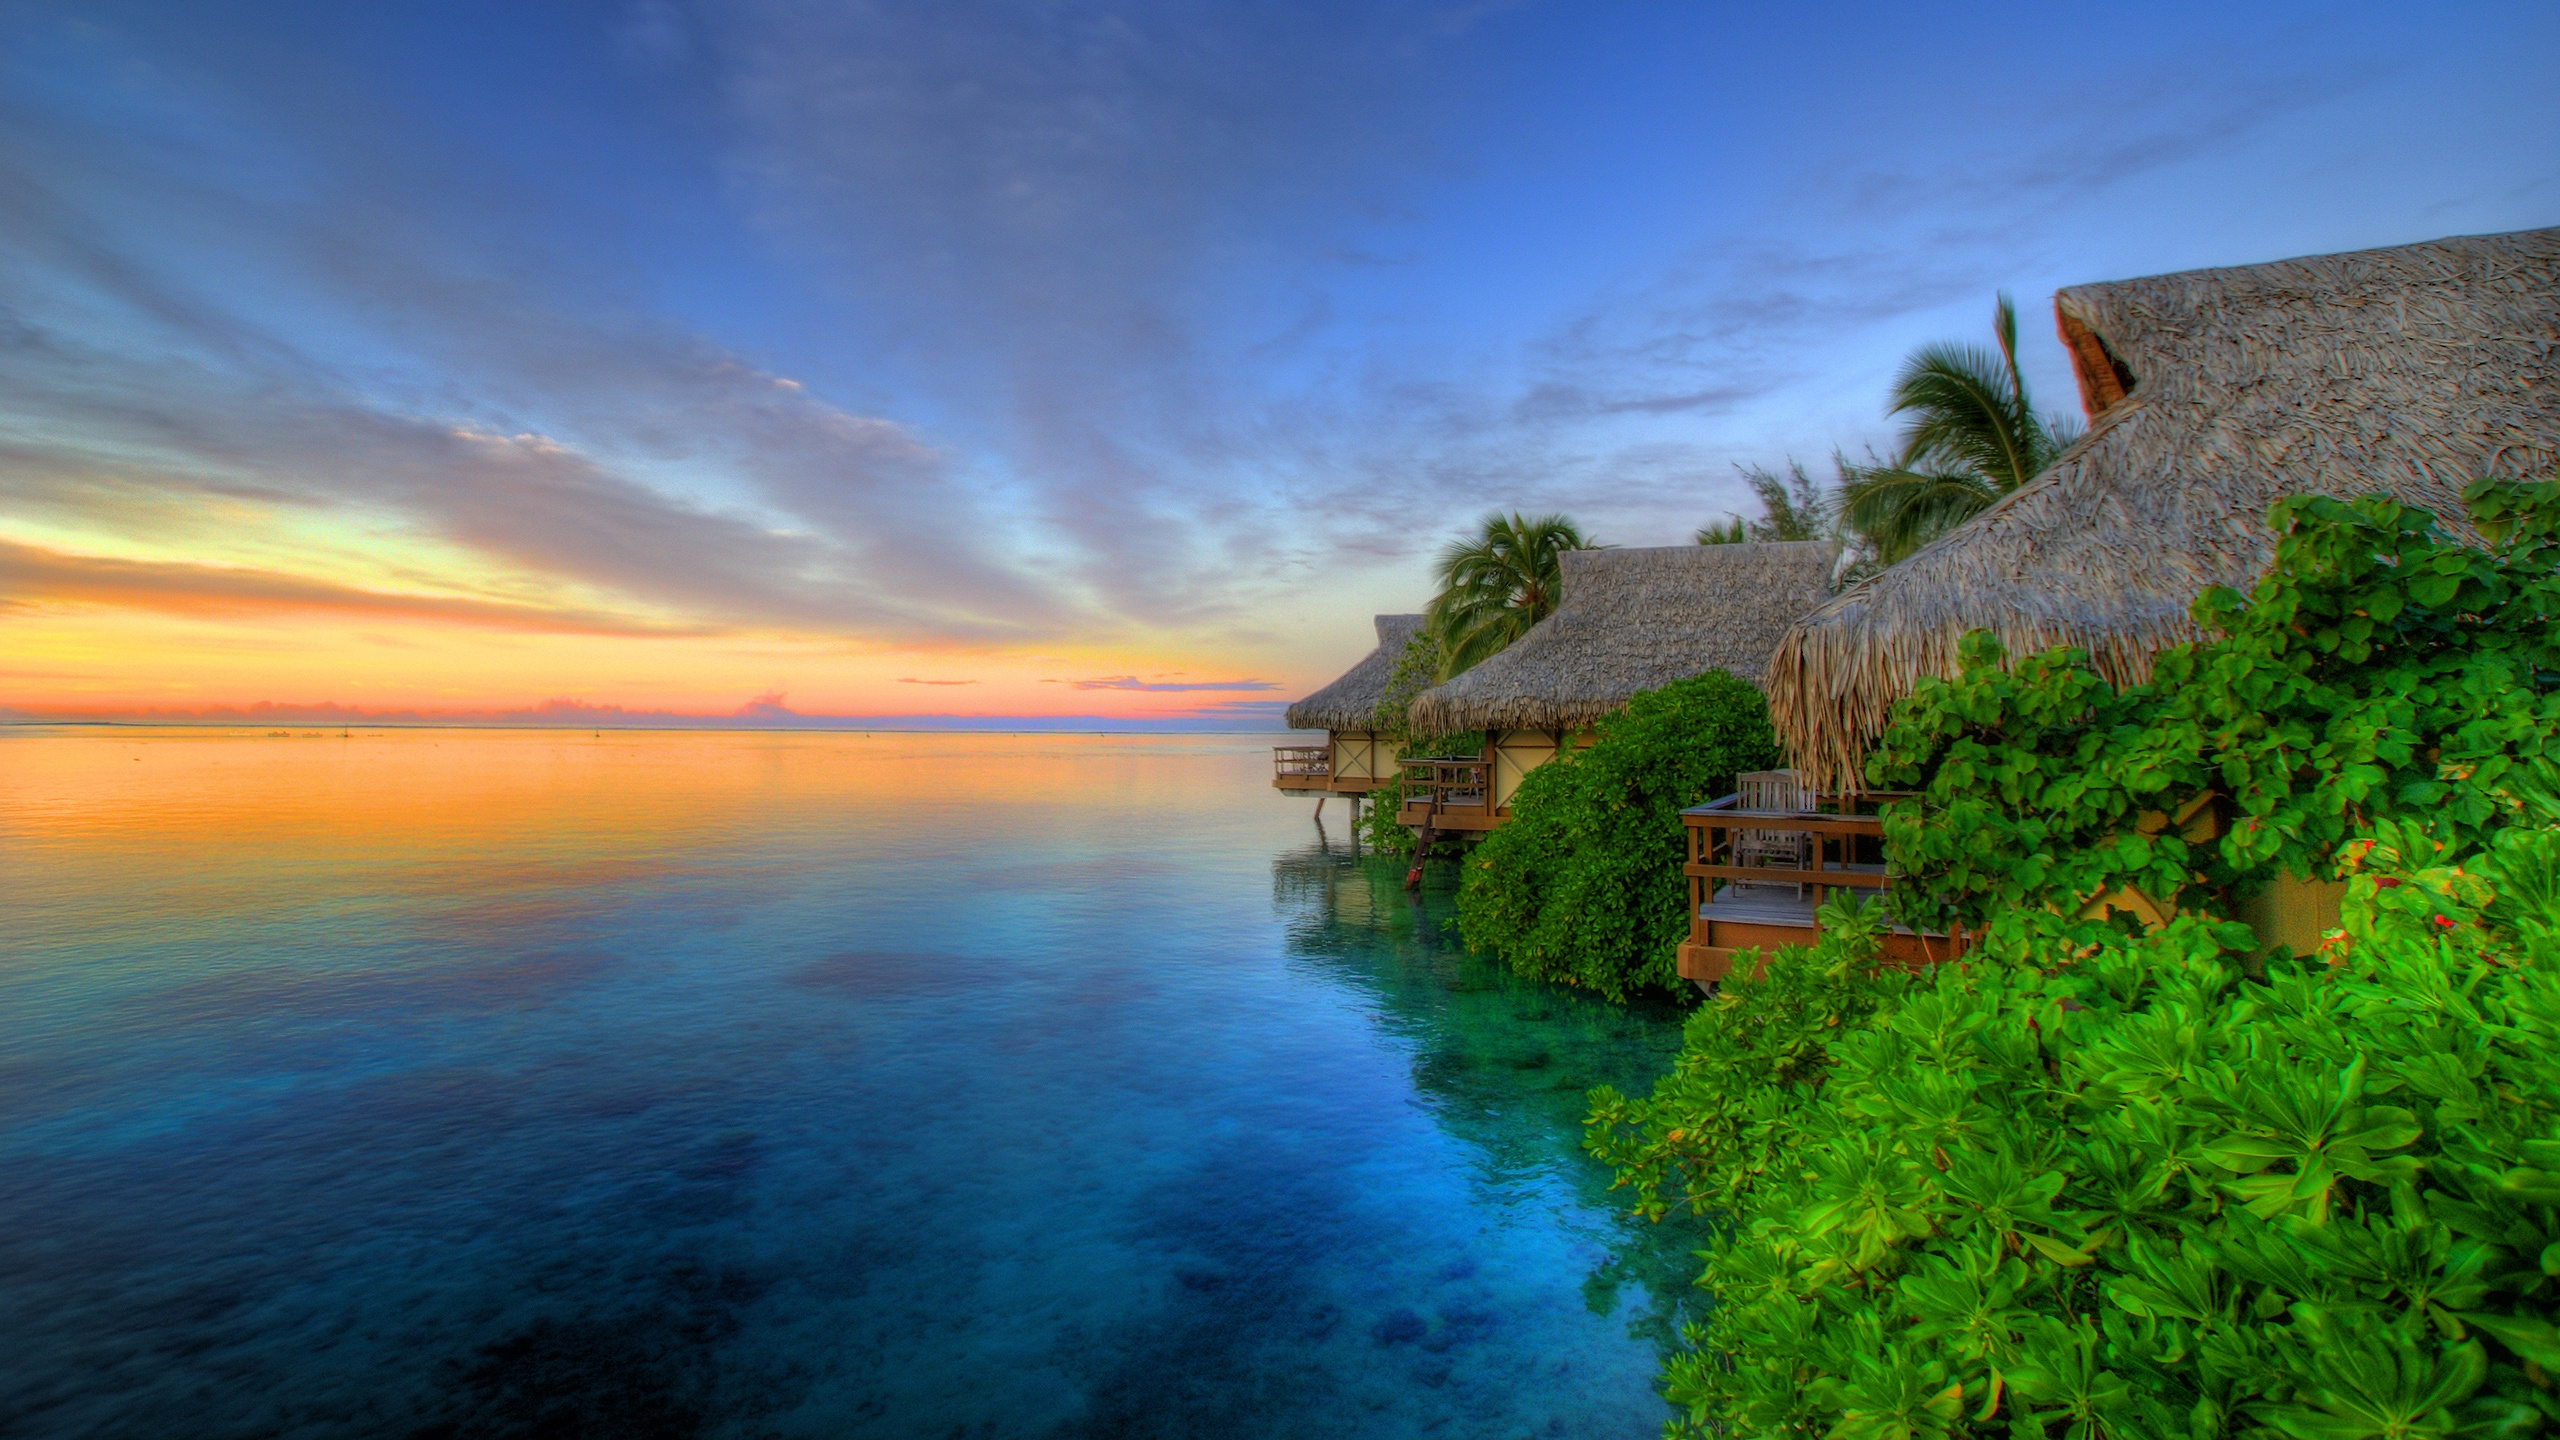 Island Sunset Wallpapers HD Wallpapers 2560x1440